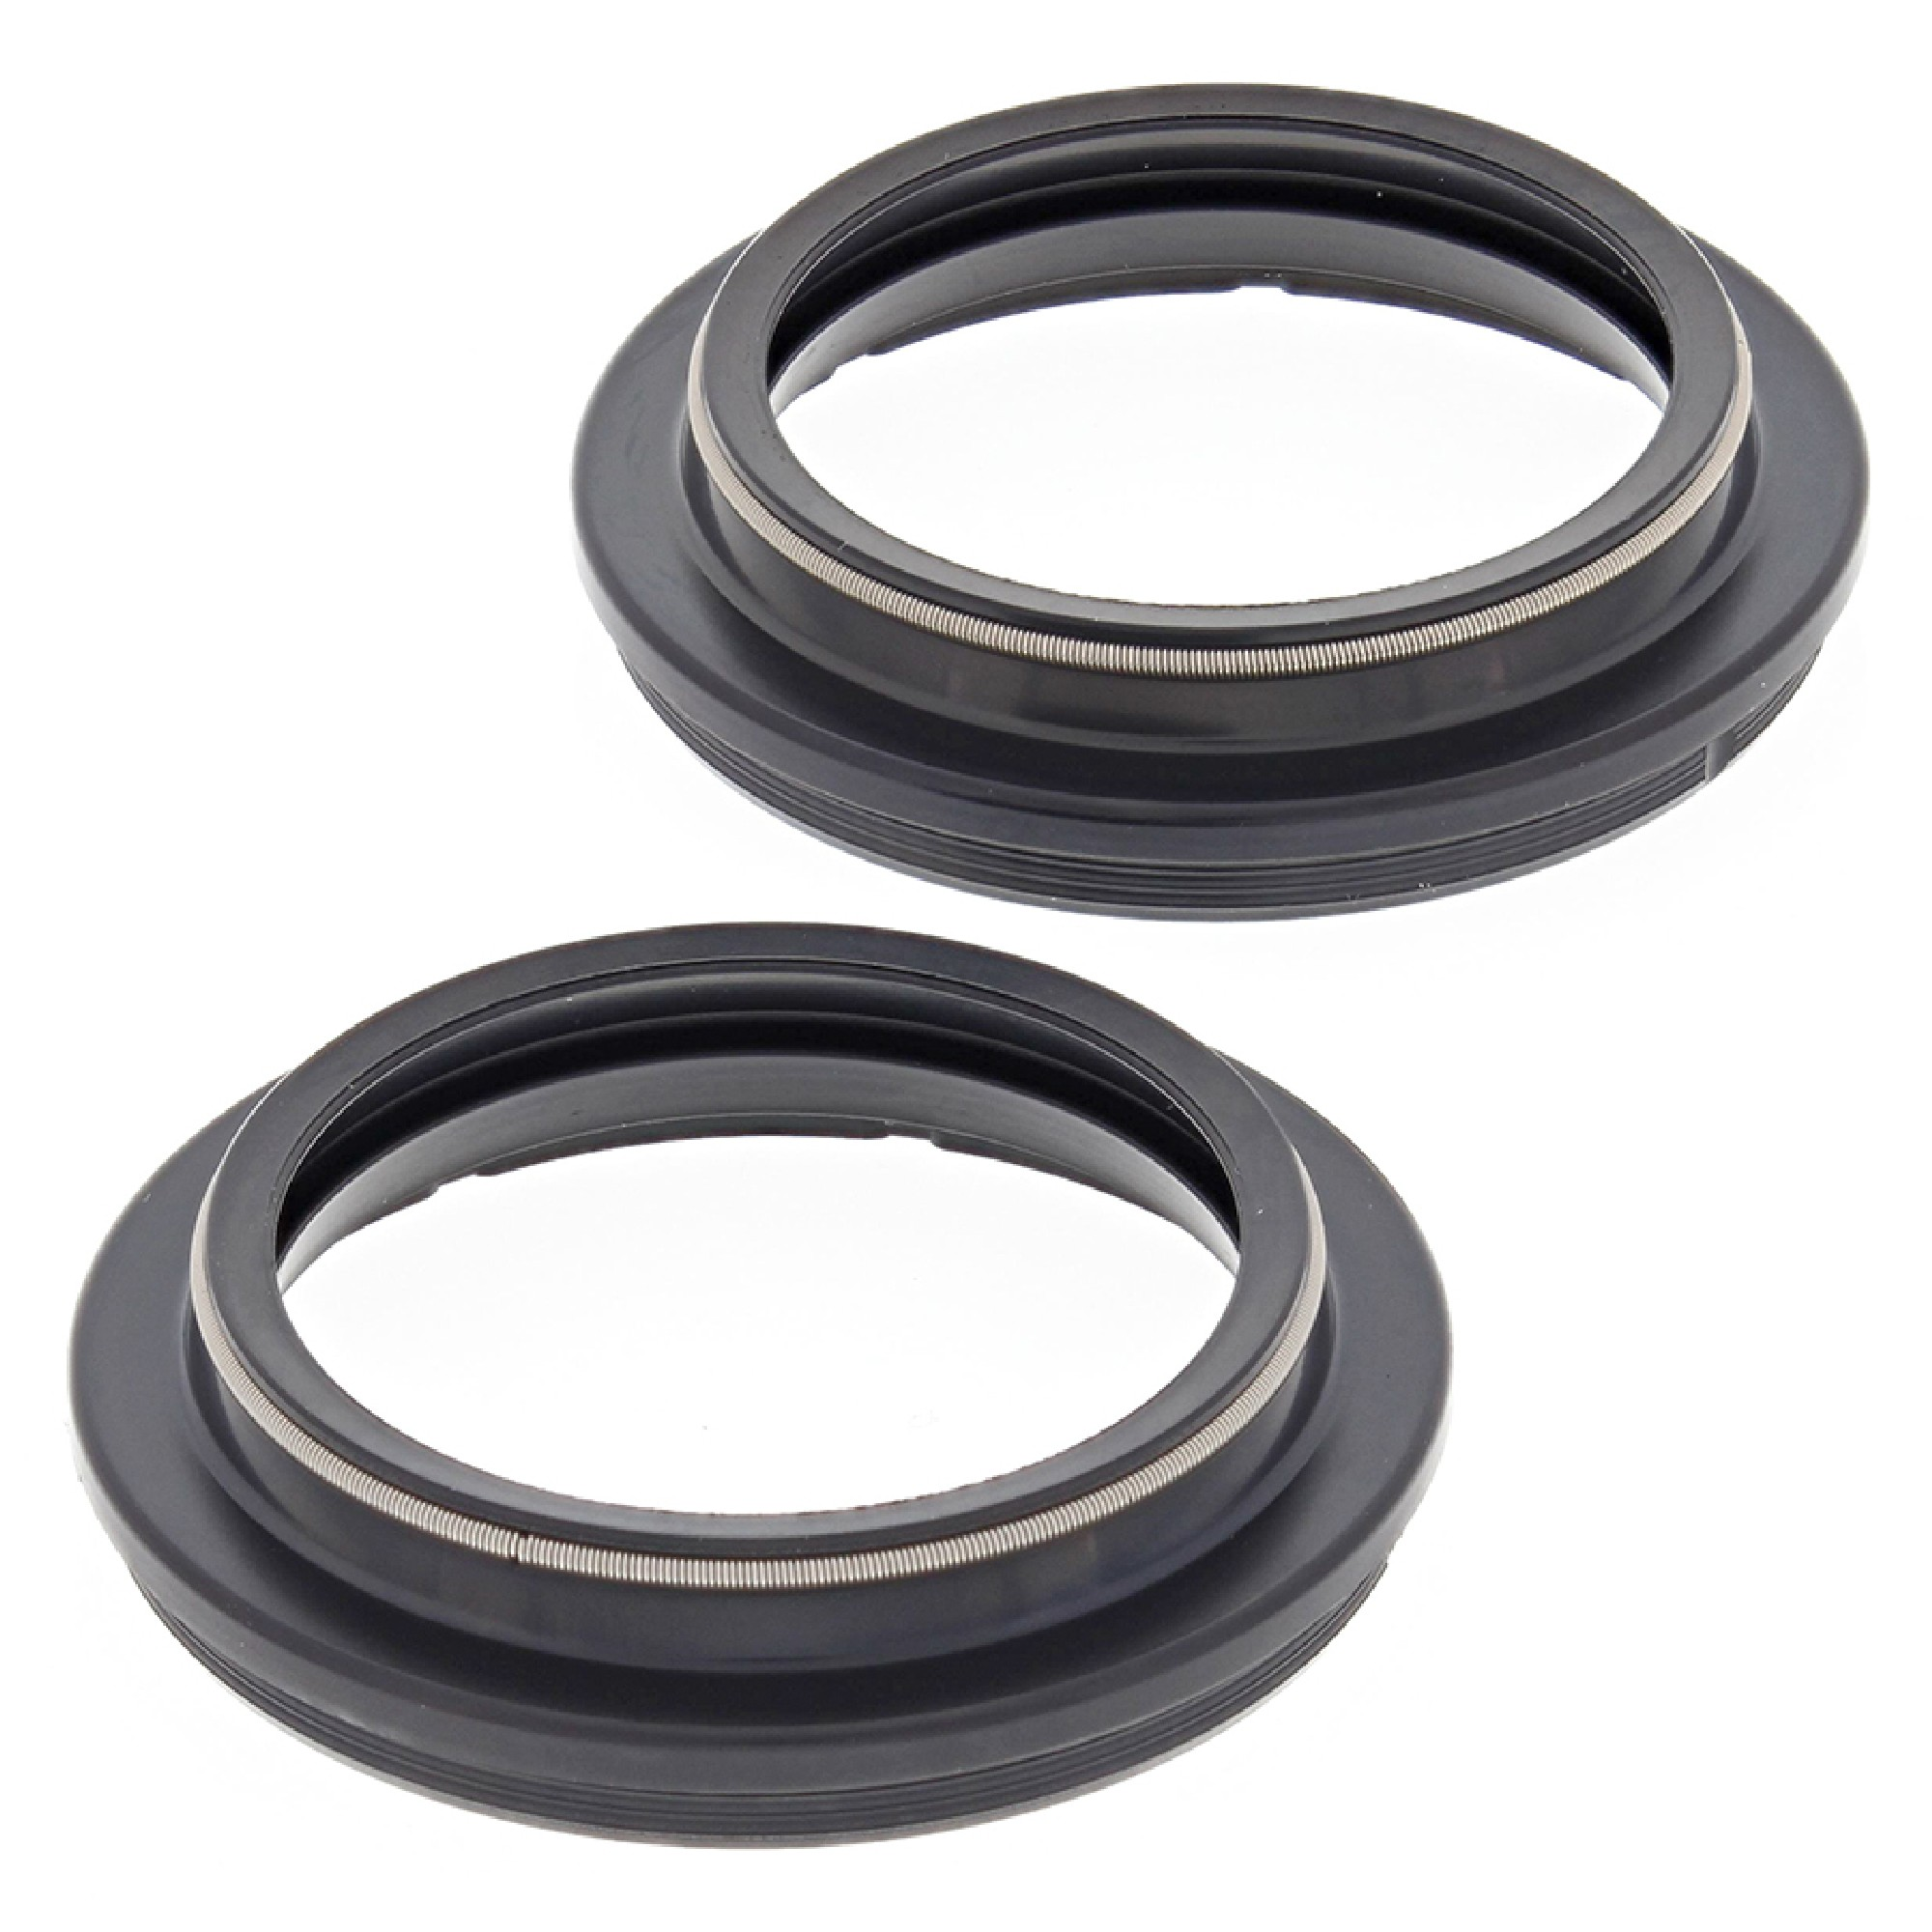 F 800 R 2015 2016 New All Balls Racing Fork Dust Seal Kit For BMW F 800 GS 2006 2007 2008 2009 2010 2011 2012 G 650 X Country 2006 2007 2008 G 650 X Challenge 2006 2007 G 450 X 2007 2008 2009 2010